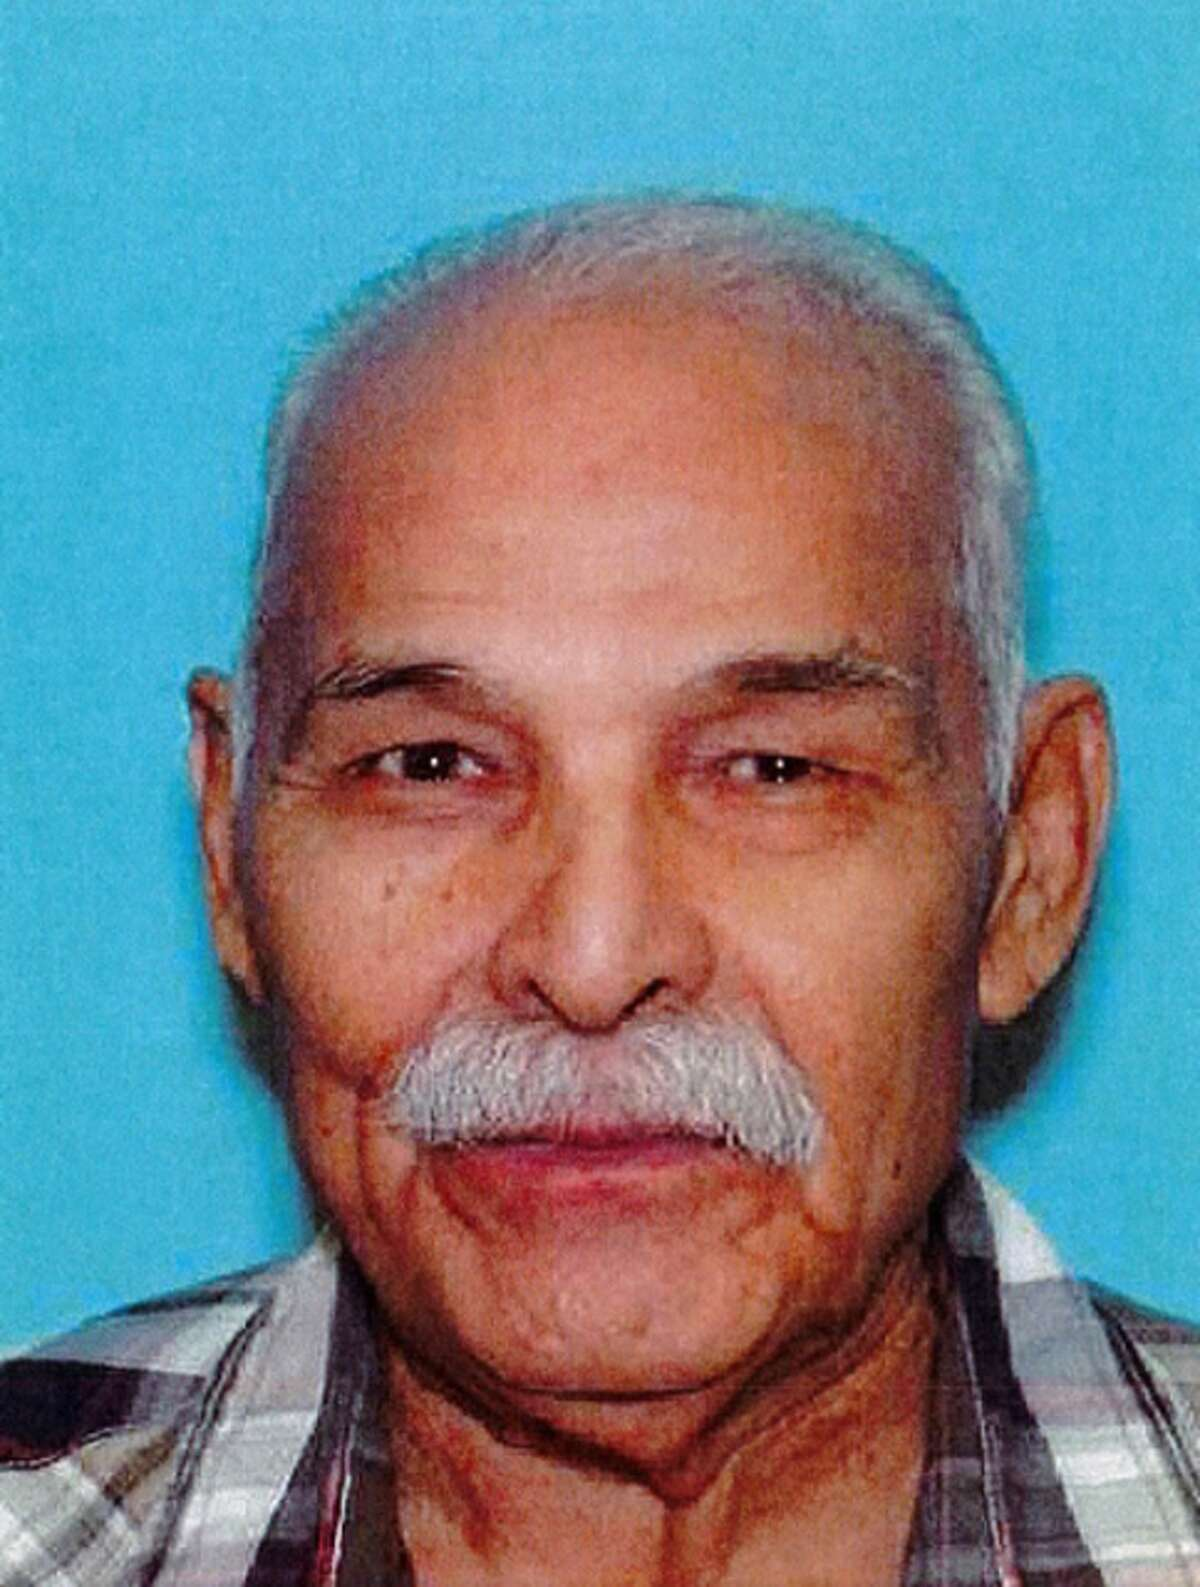 The Bexar County Sheriff's Office is looking for Pete Carreon, who went missing on Jan. 20, 2018.